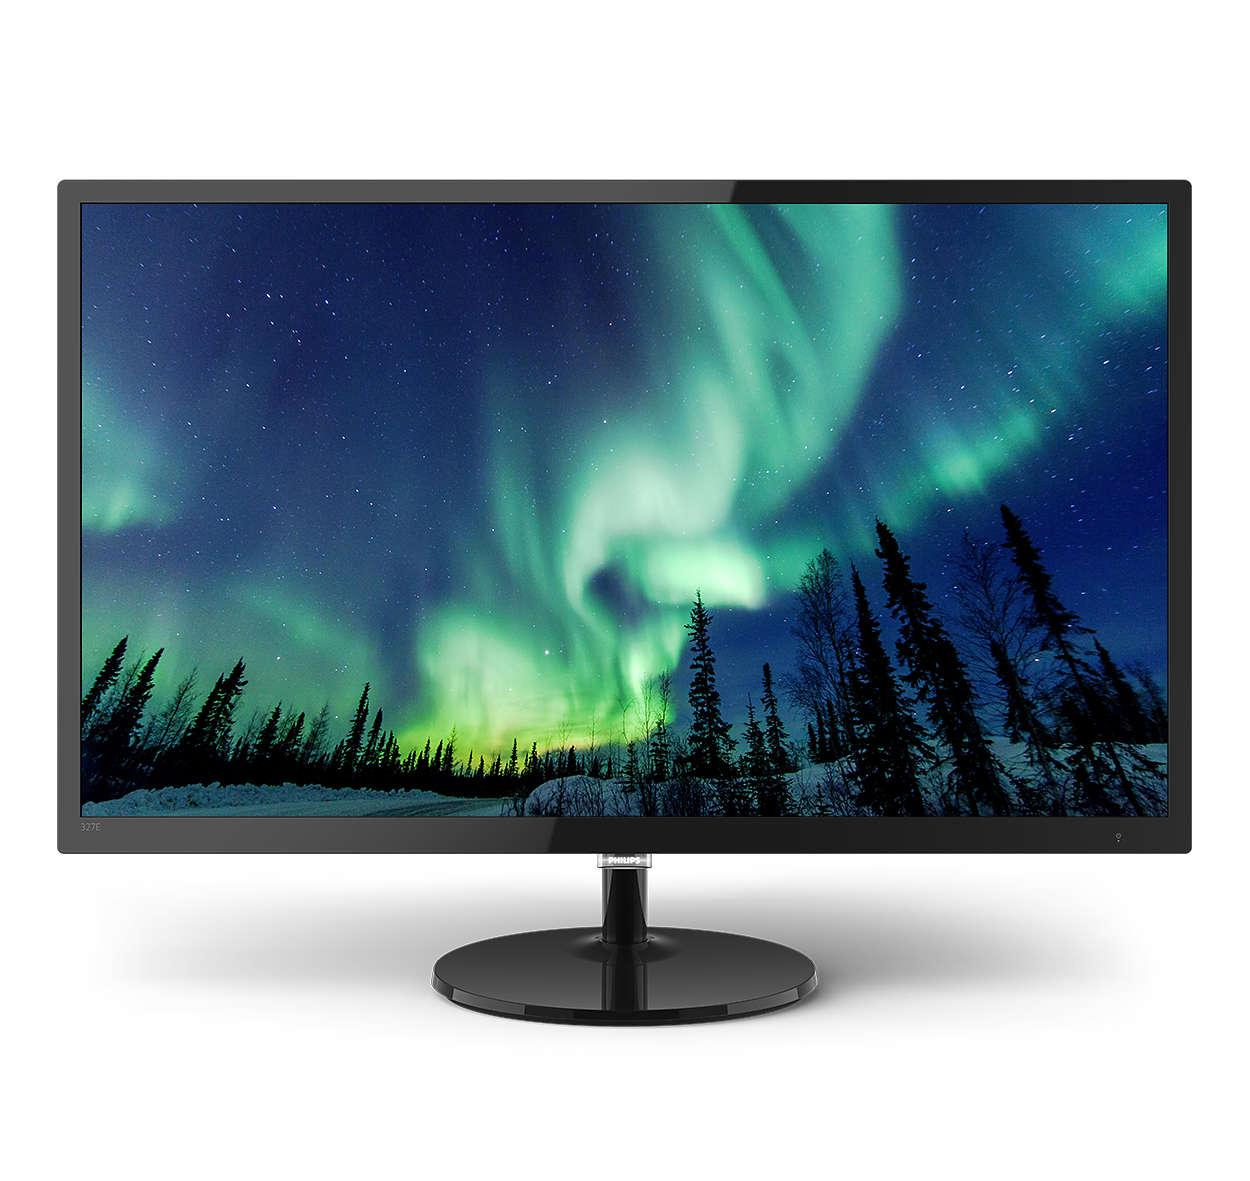 Monitors 327E8QJAB 31.5in IPS FHD MM LCD Monitor